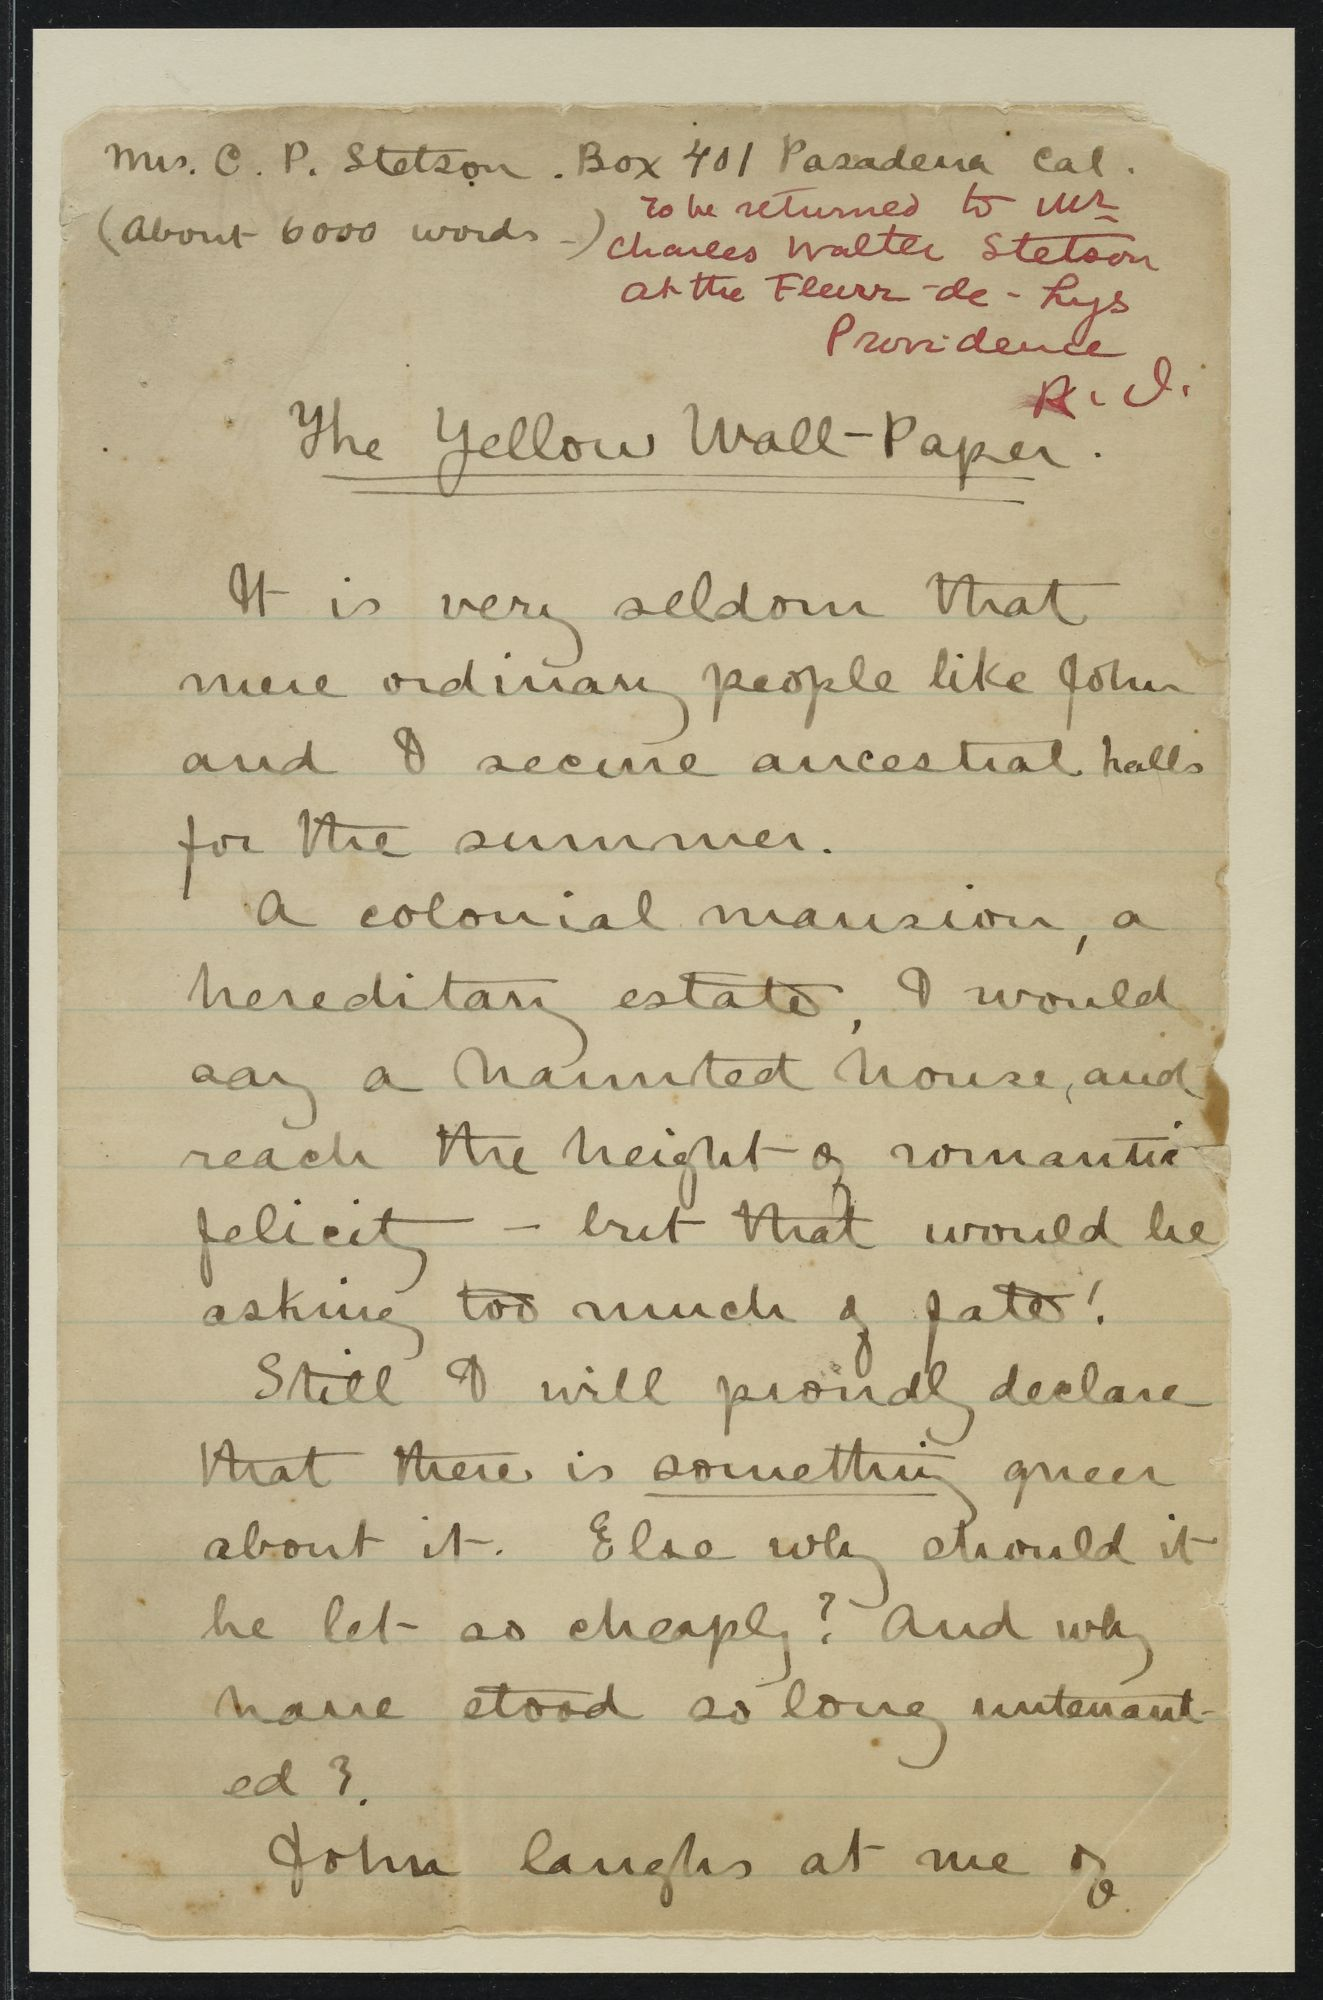 Gilman, Charlotte Perkins, 1860-1935. Papers, 1846-1961, Folder 221. Stories, miscellaneous.